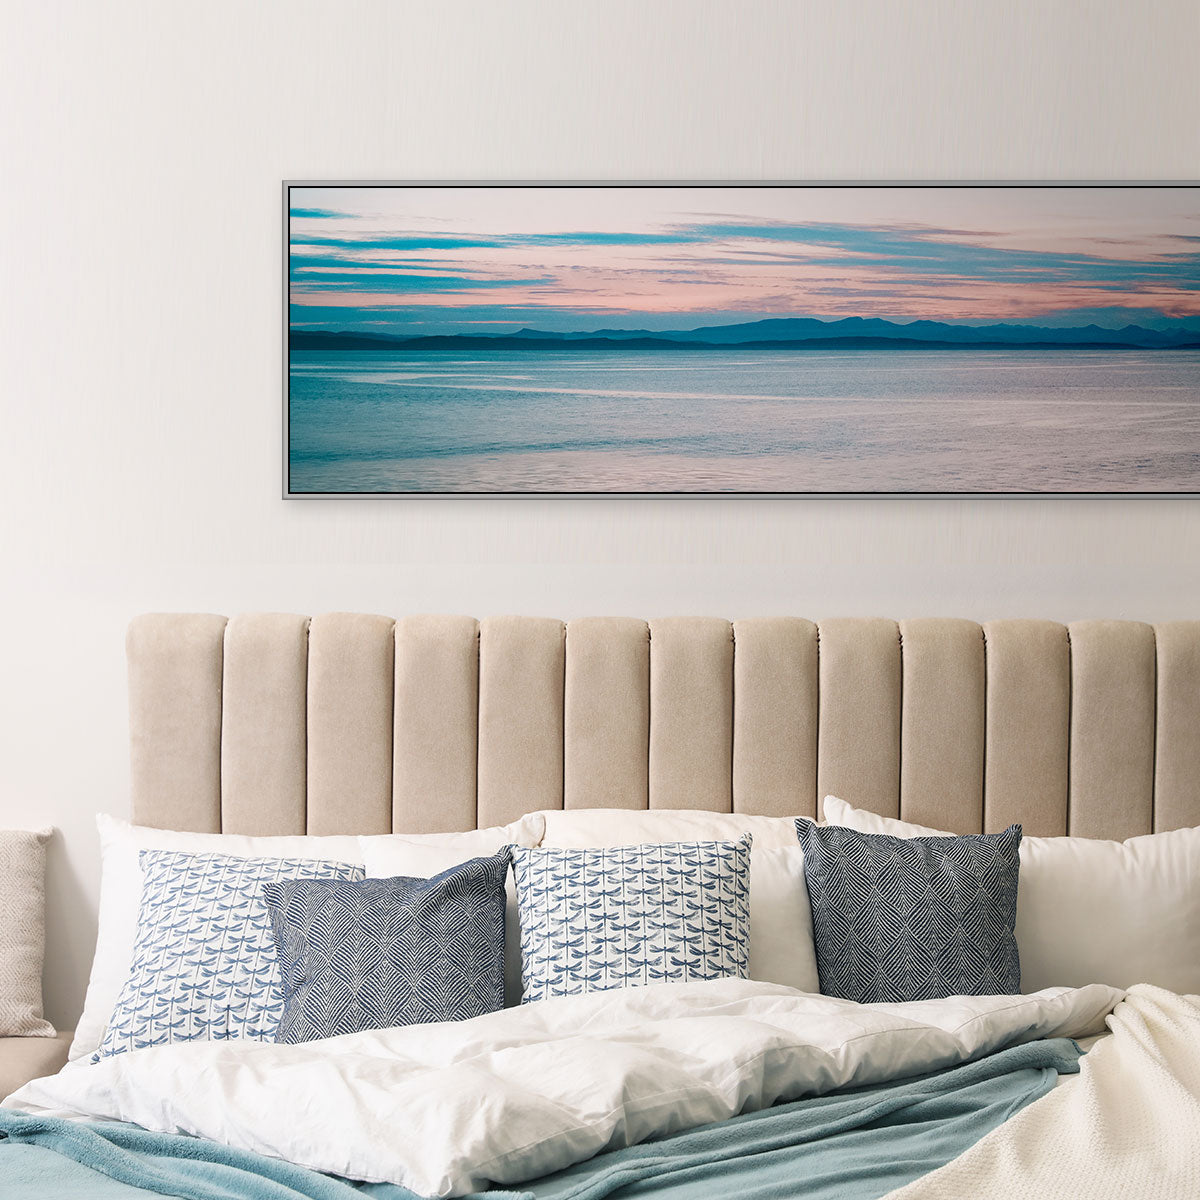 Panoramic Photo of a Sunset Over the Ocean in Victoria, BC - Bedroom Decor Styled by Posterjack Canada